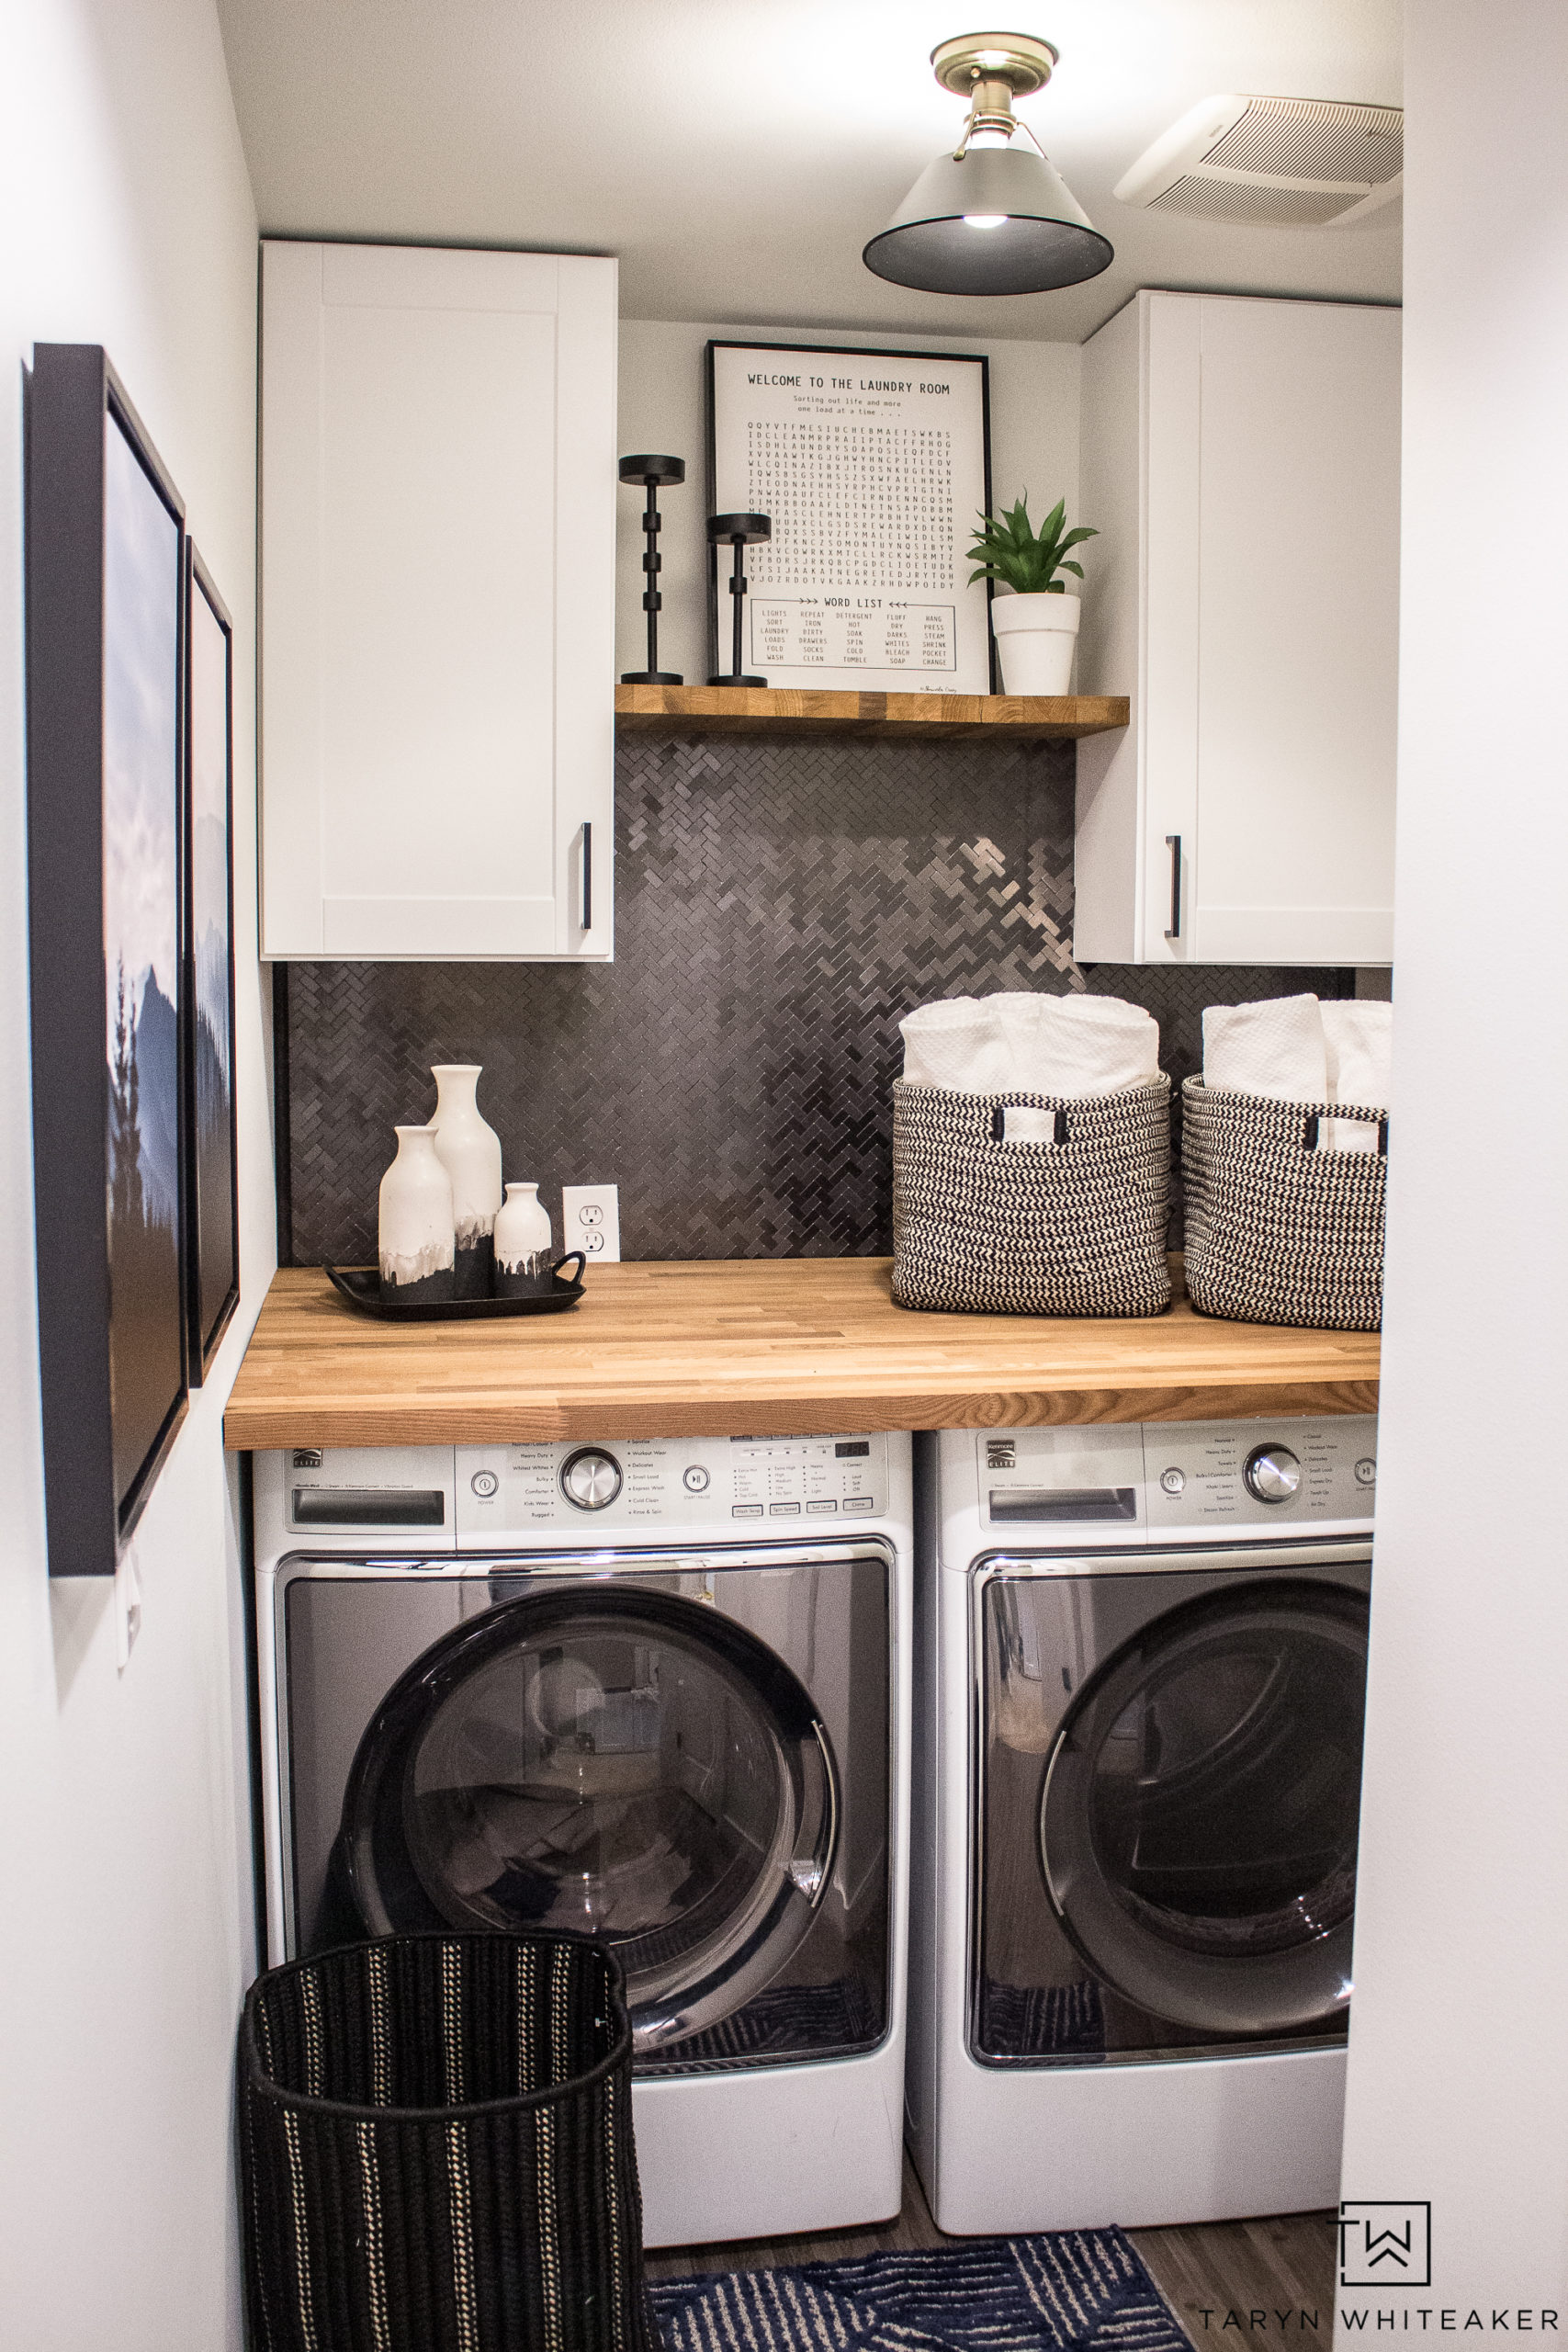 Small Laundry Room Makeover - Taryn Whiteaker